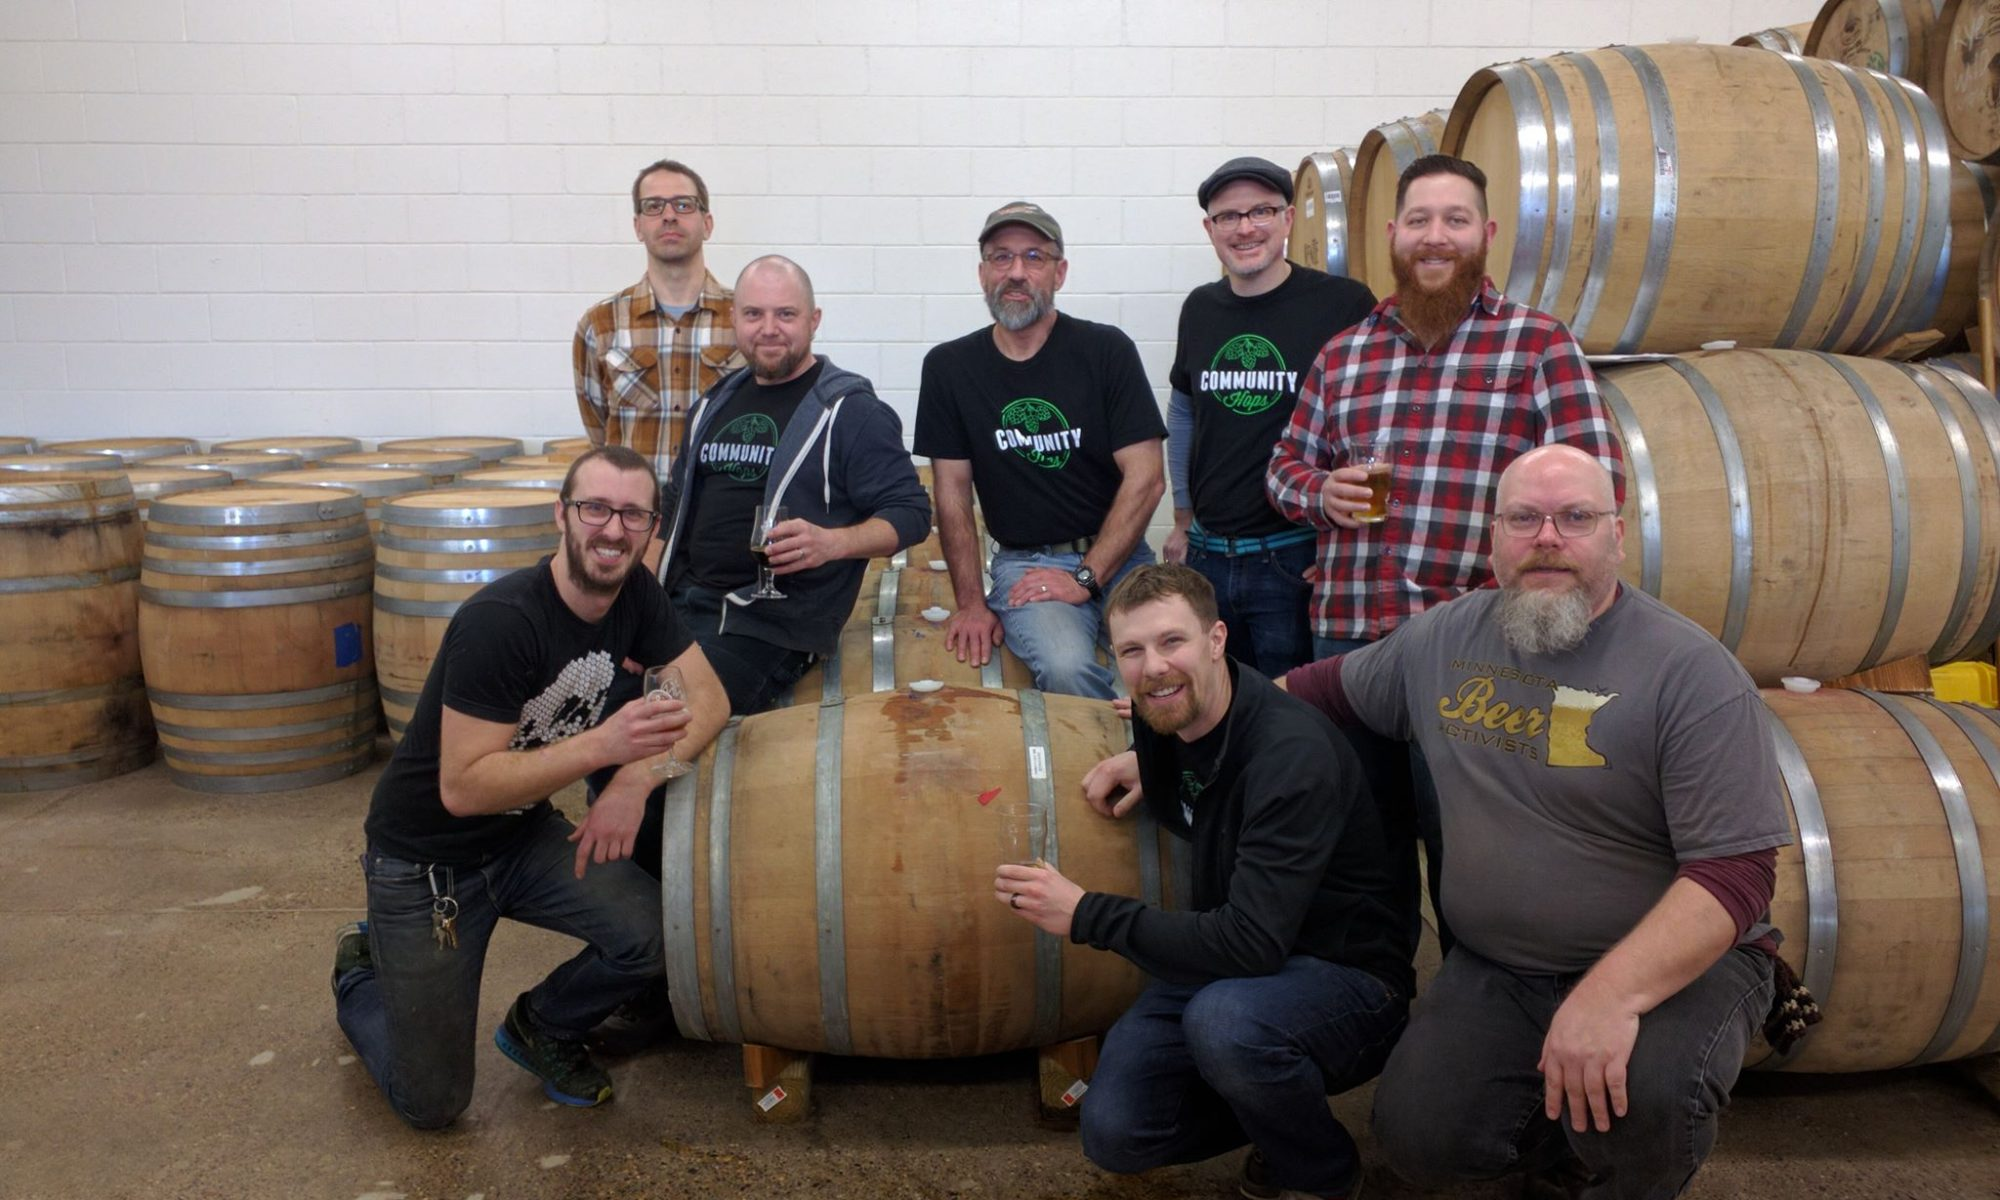 Wild Mind Community Barrel Project barrel is in place. We'll age this for three months then bottle up our beer!